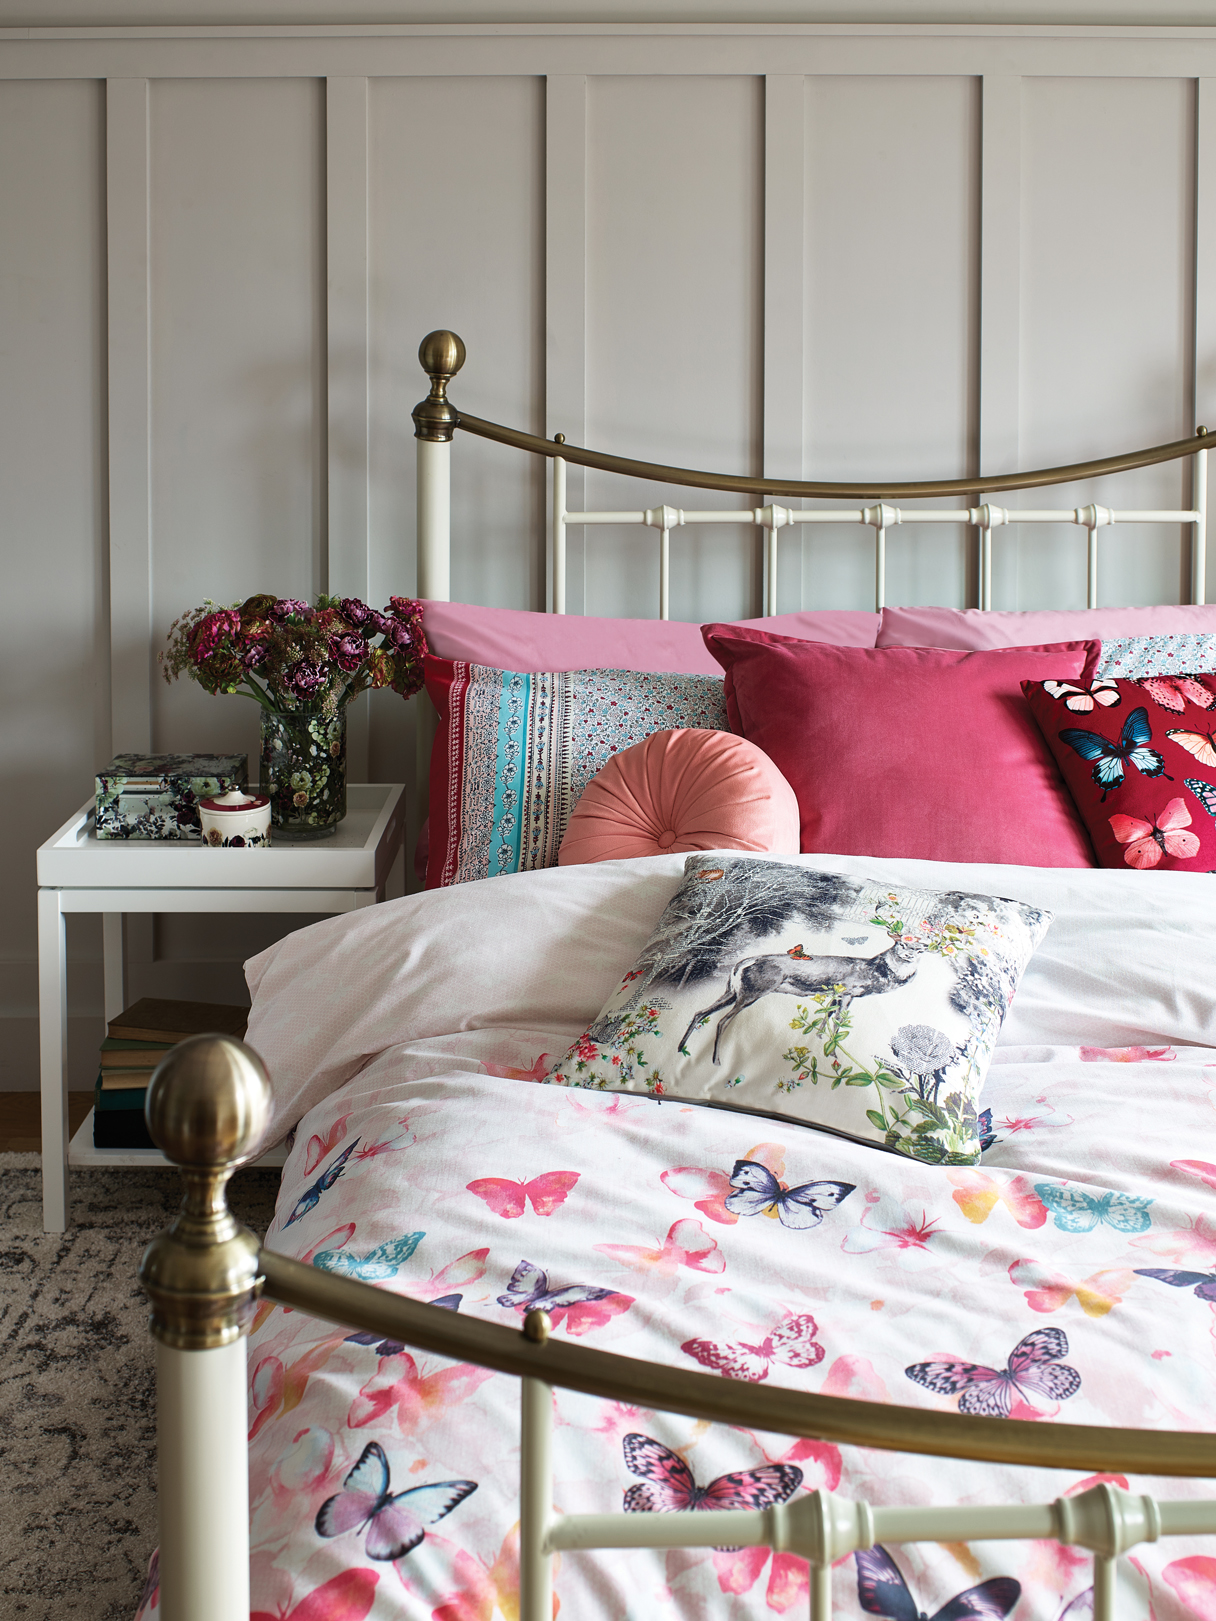 White tray side table - £29, Floral print glass jewellery box - £12, Floral trinket pot - £6, Nancy double bed in cream - £199, Lace butterfly double duvet set - £12, Patchwork double duvet set - £12, Pink round pinwheel cushion - £5, Velvet cushion - £8, Butterfly printed cushion - £5, Deer cushion - £5, Homemaker ivory and grey traditional rug - £40.